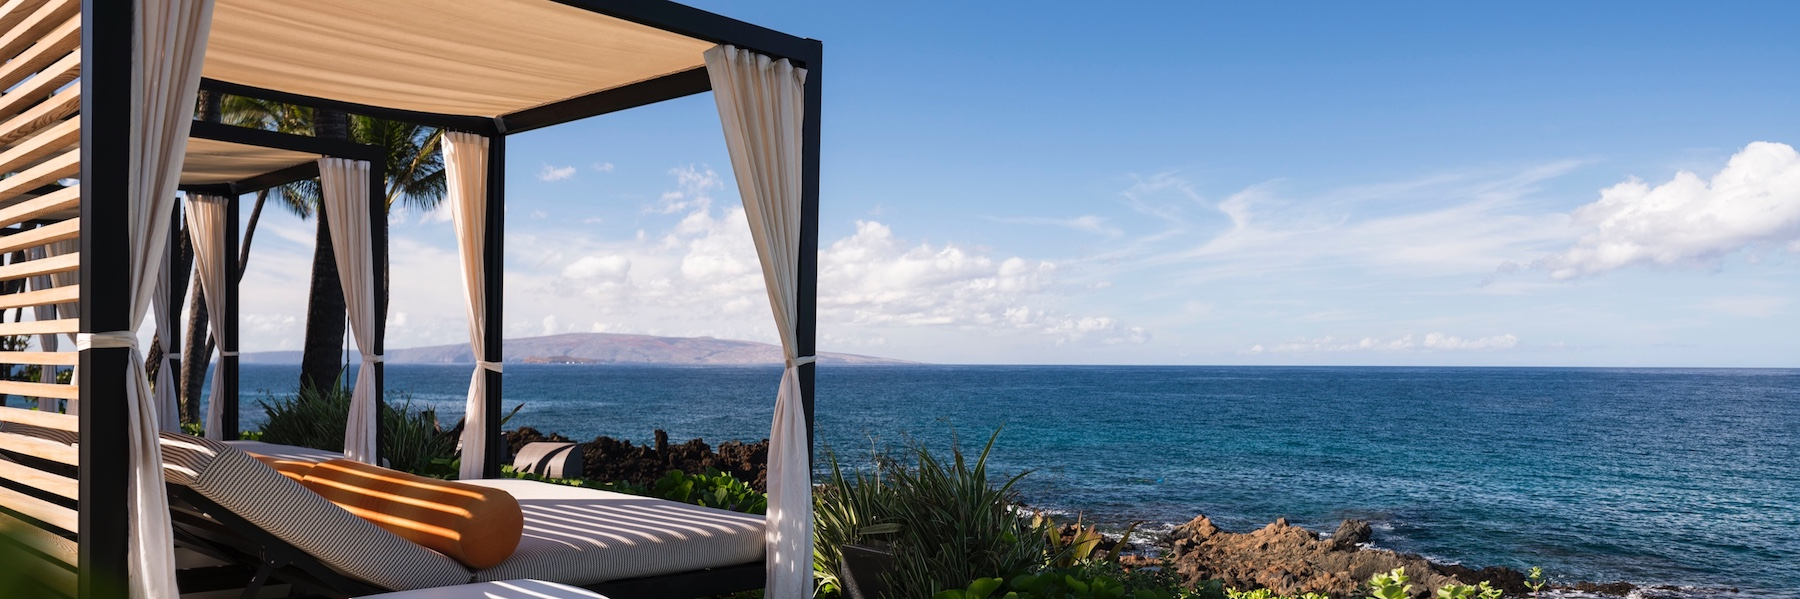 Ocean view from Wailea Beach Resort - Marriott in Maui, Hawaii